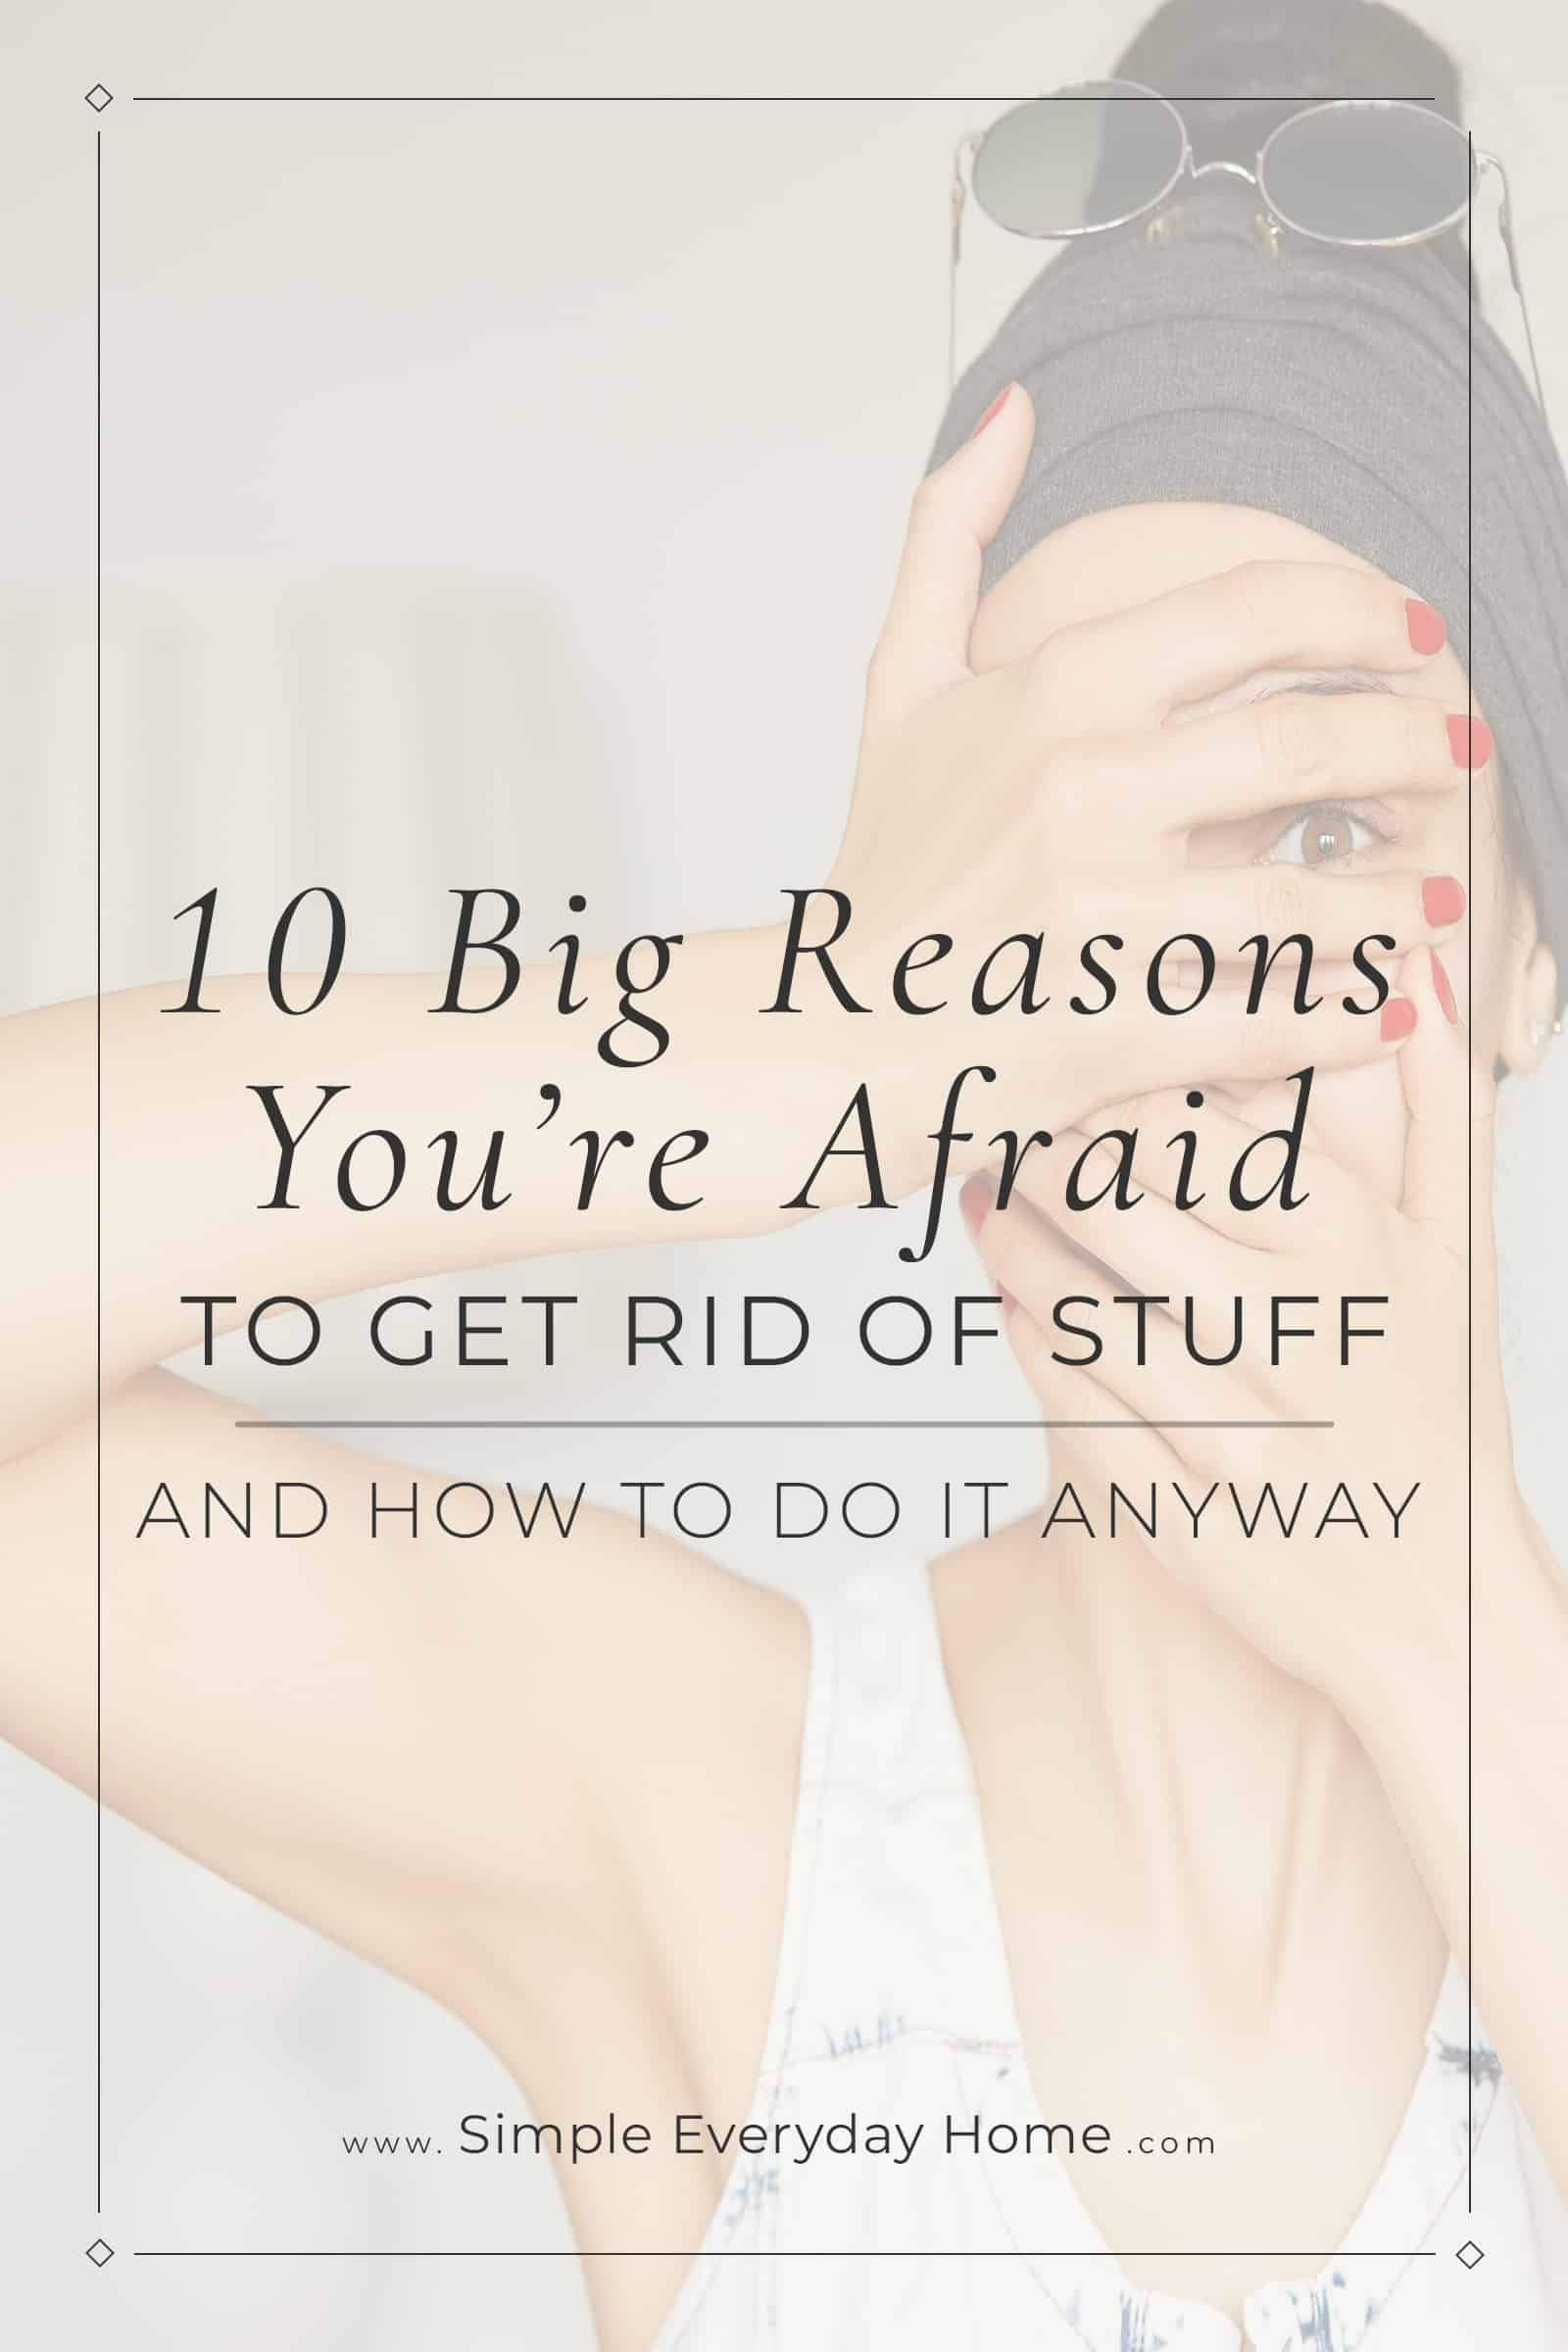 10 Big Reasons You're Afraid to Get Rid of Stuff and How to Do It Anyway